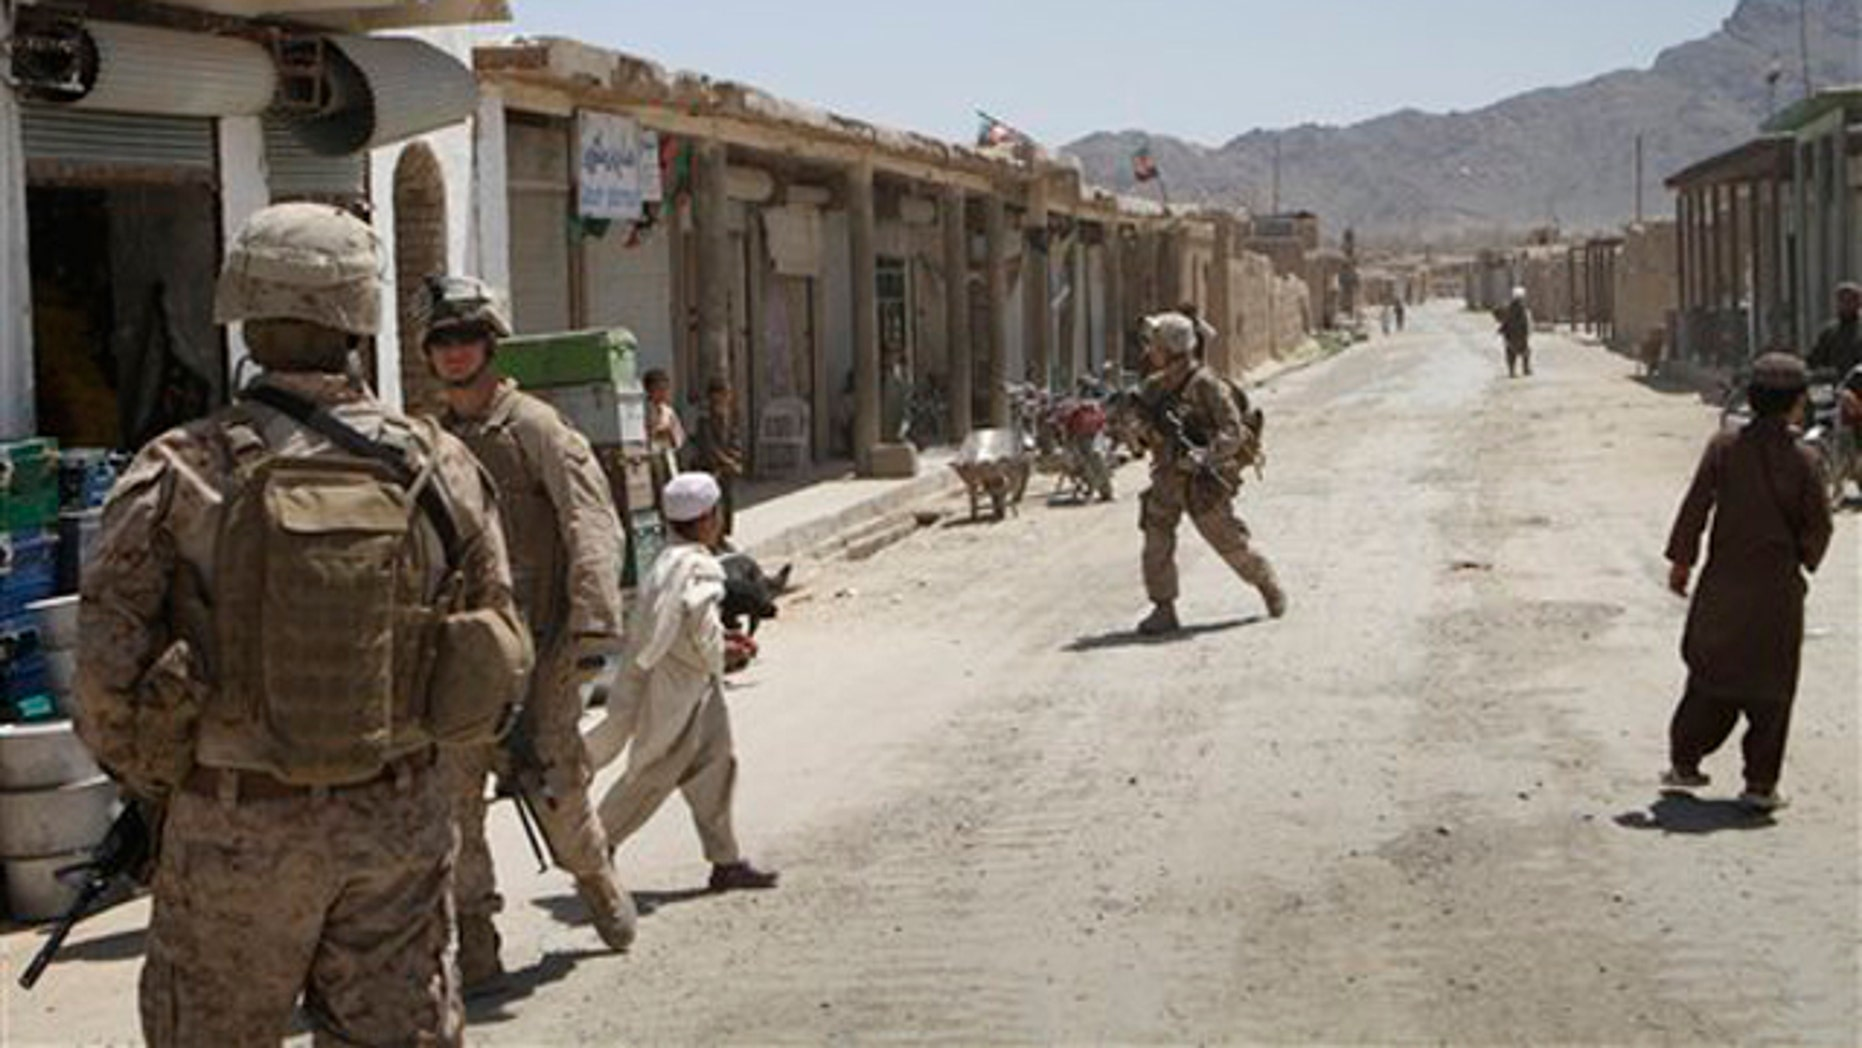 In this April 26 photo, U.S. Marines with the 3rd Battalion, 2nd Regiment patrol Nawzad's virtually empty bazaar in Helmand province south of Kabul, Afghanistan.